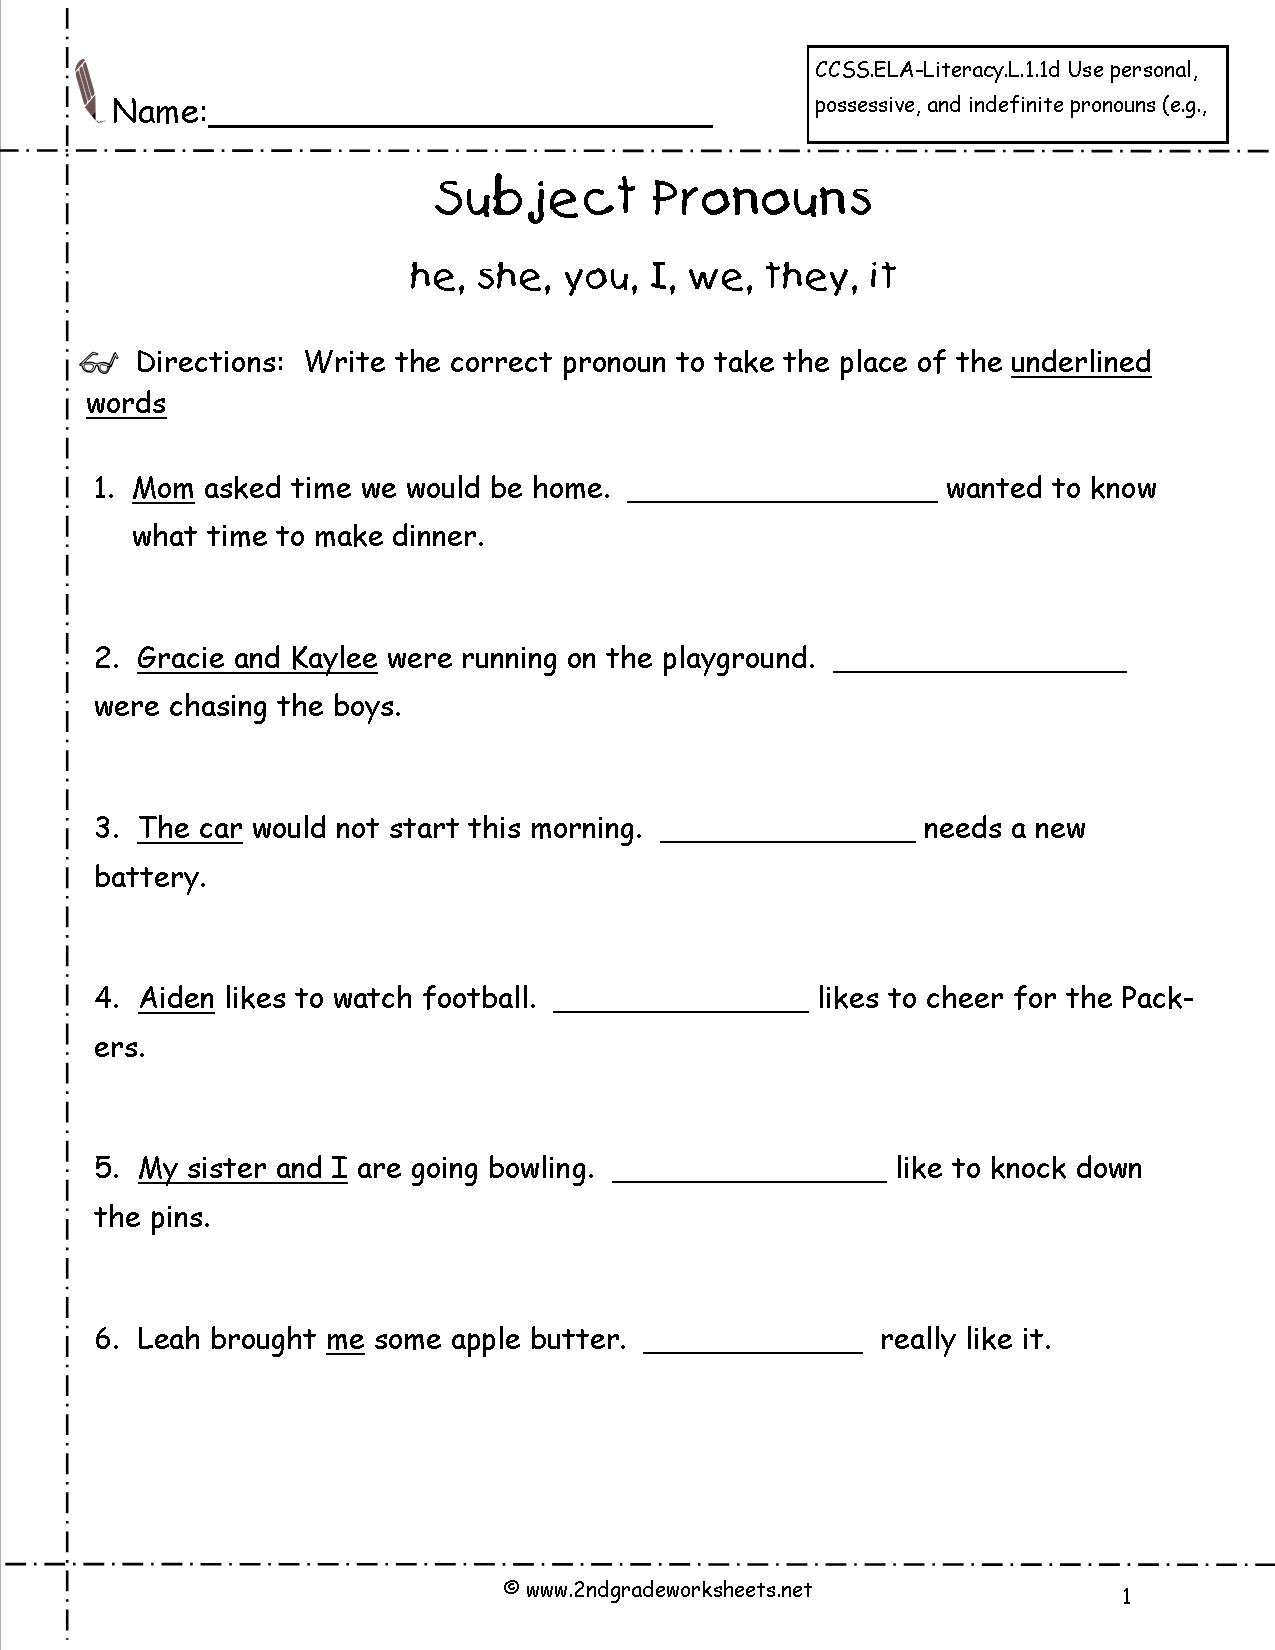 Pronouns Nouns Worksheets From The Teacher's Guide Together With Subject Pronoun Worksheets For Grade 2